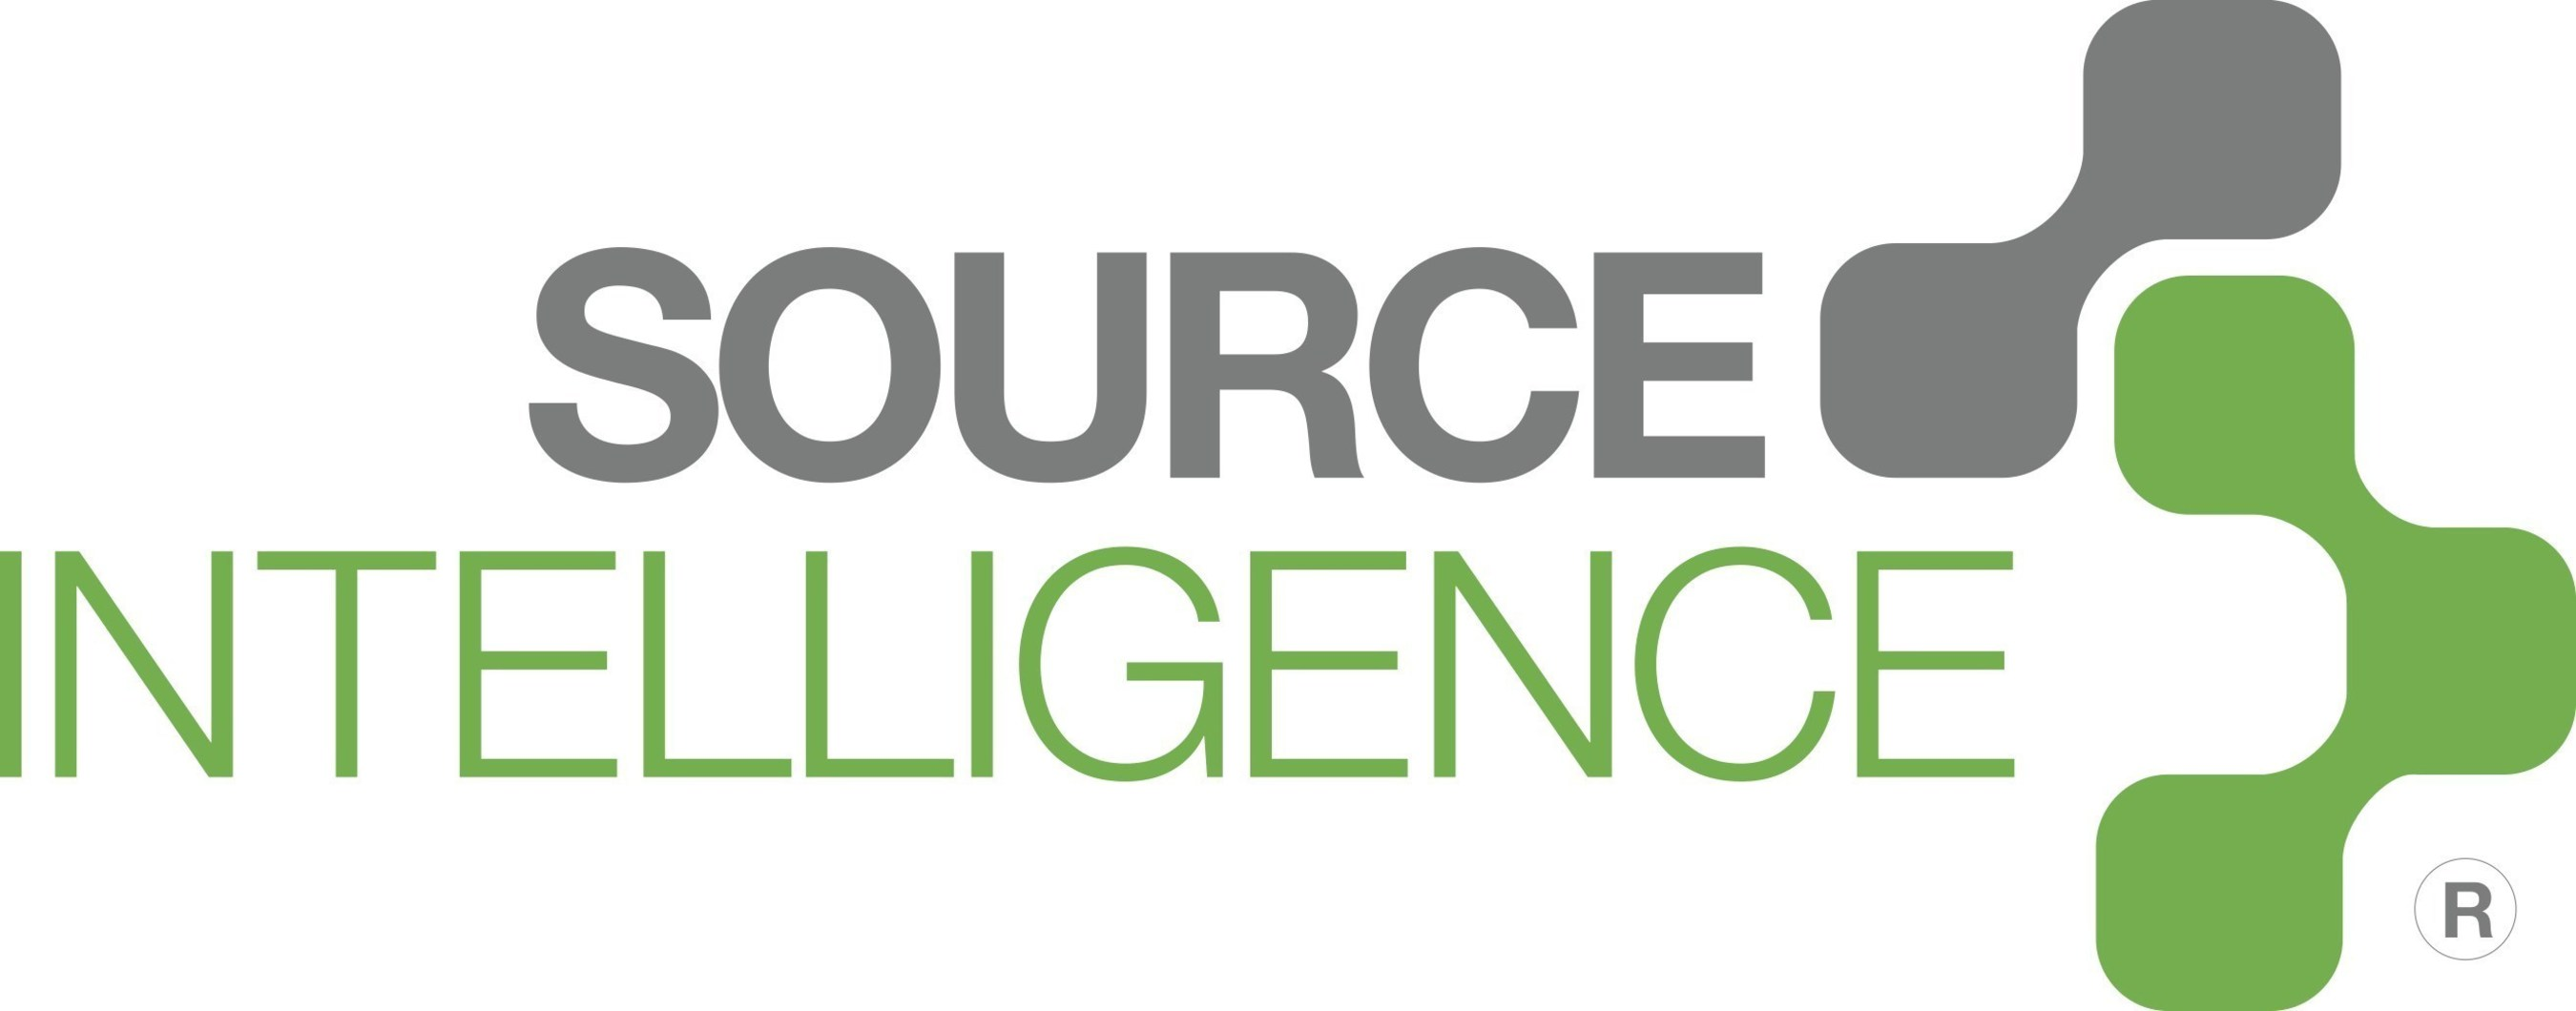 Source Intelligence(R) (SI) is a global network of businesses linked together to expedite the exchange and validation of compliance information. www.sourceintelligence.com